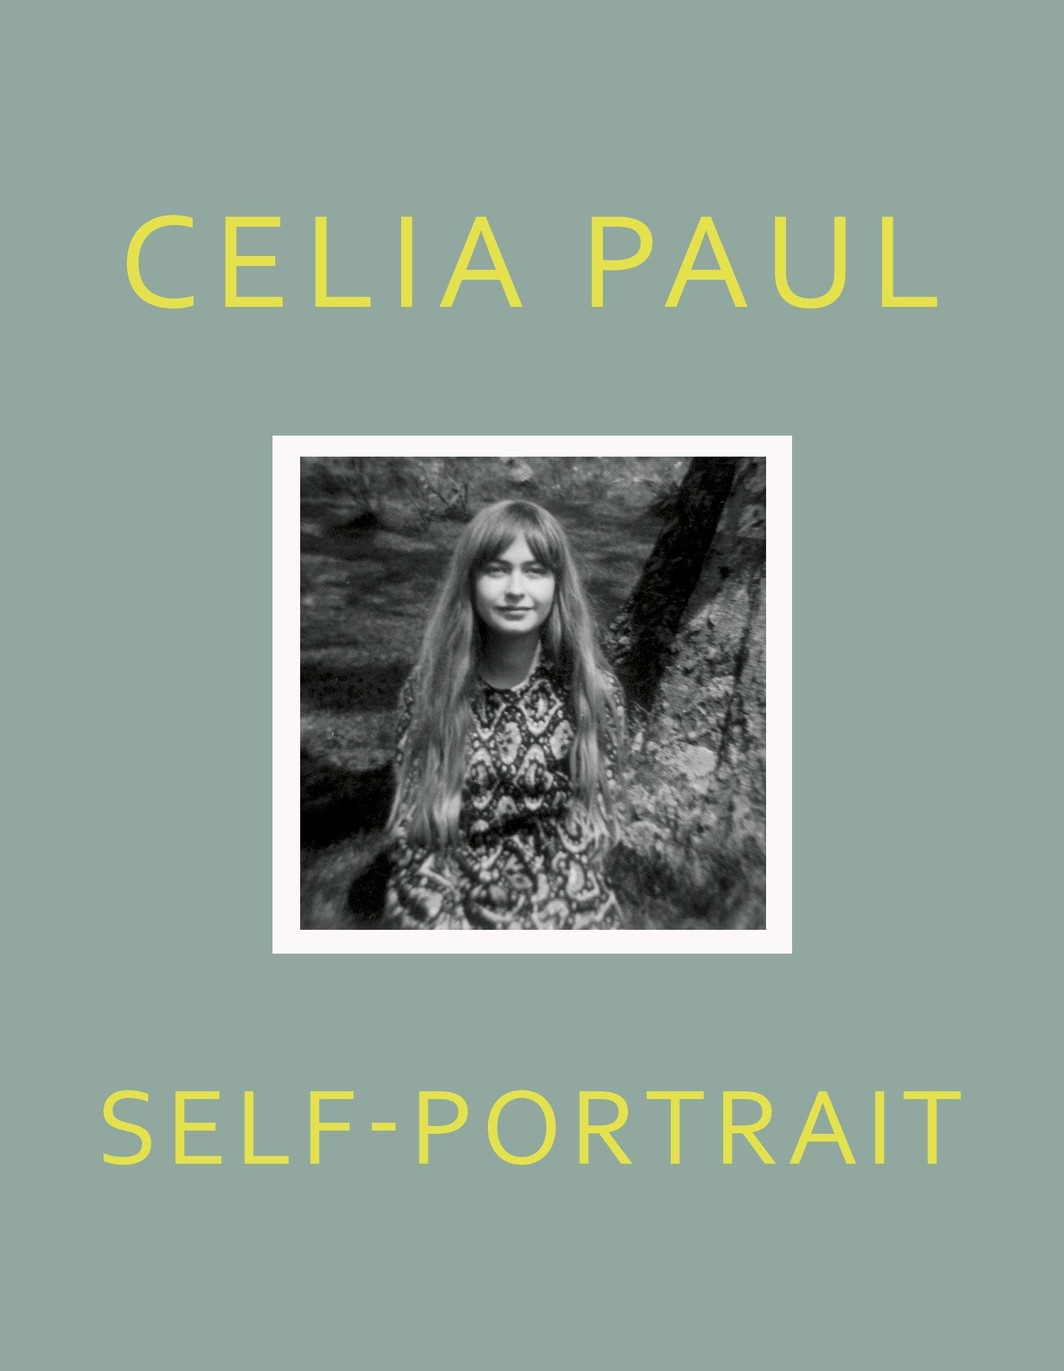 The cover of Self-Portrait